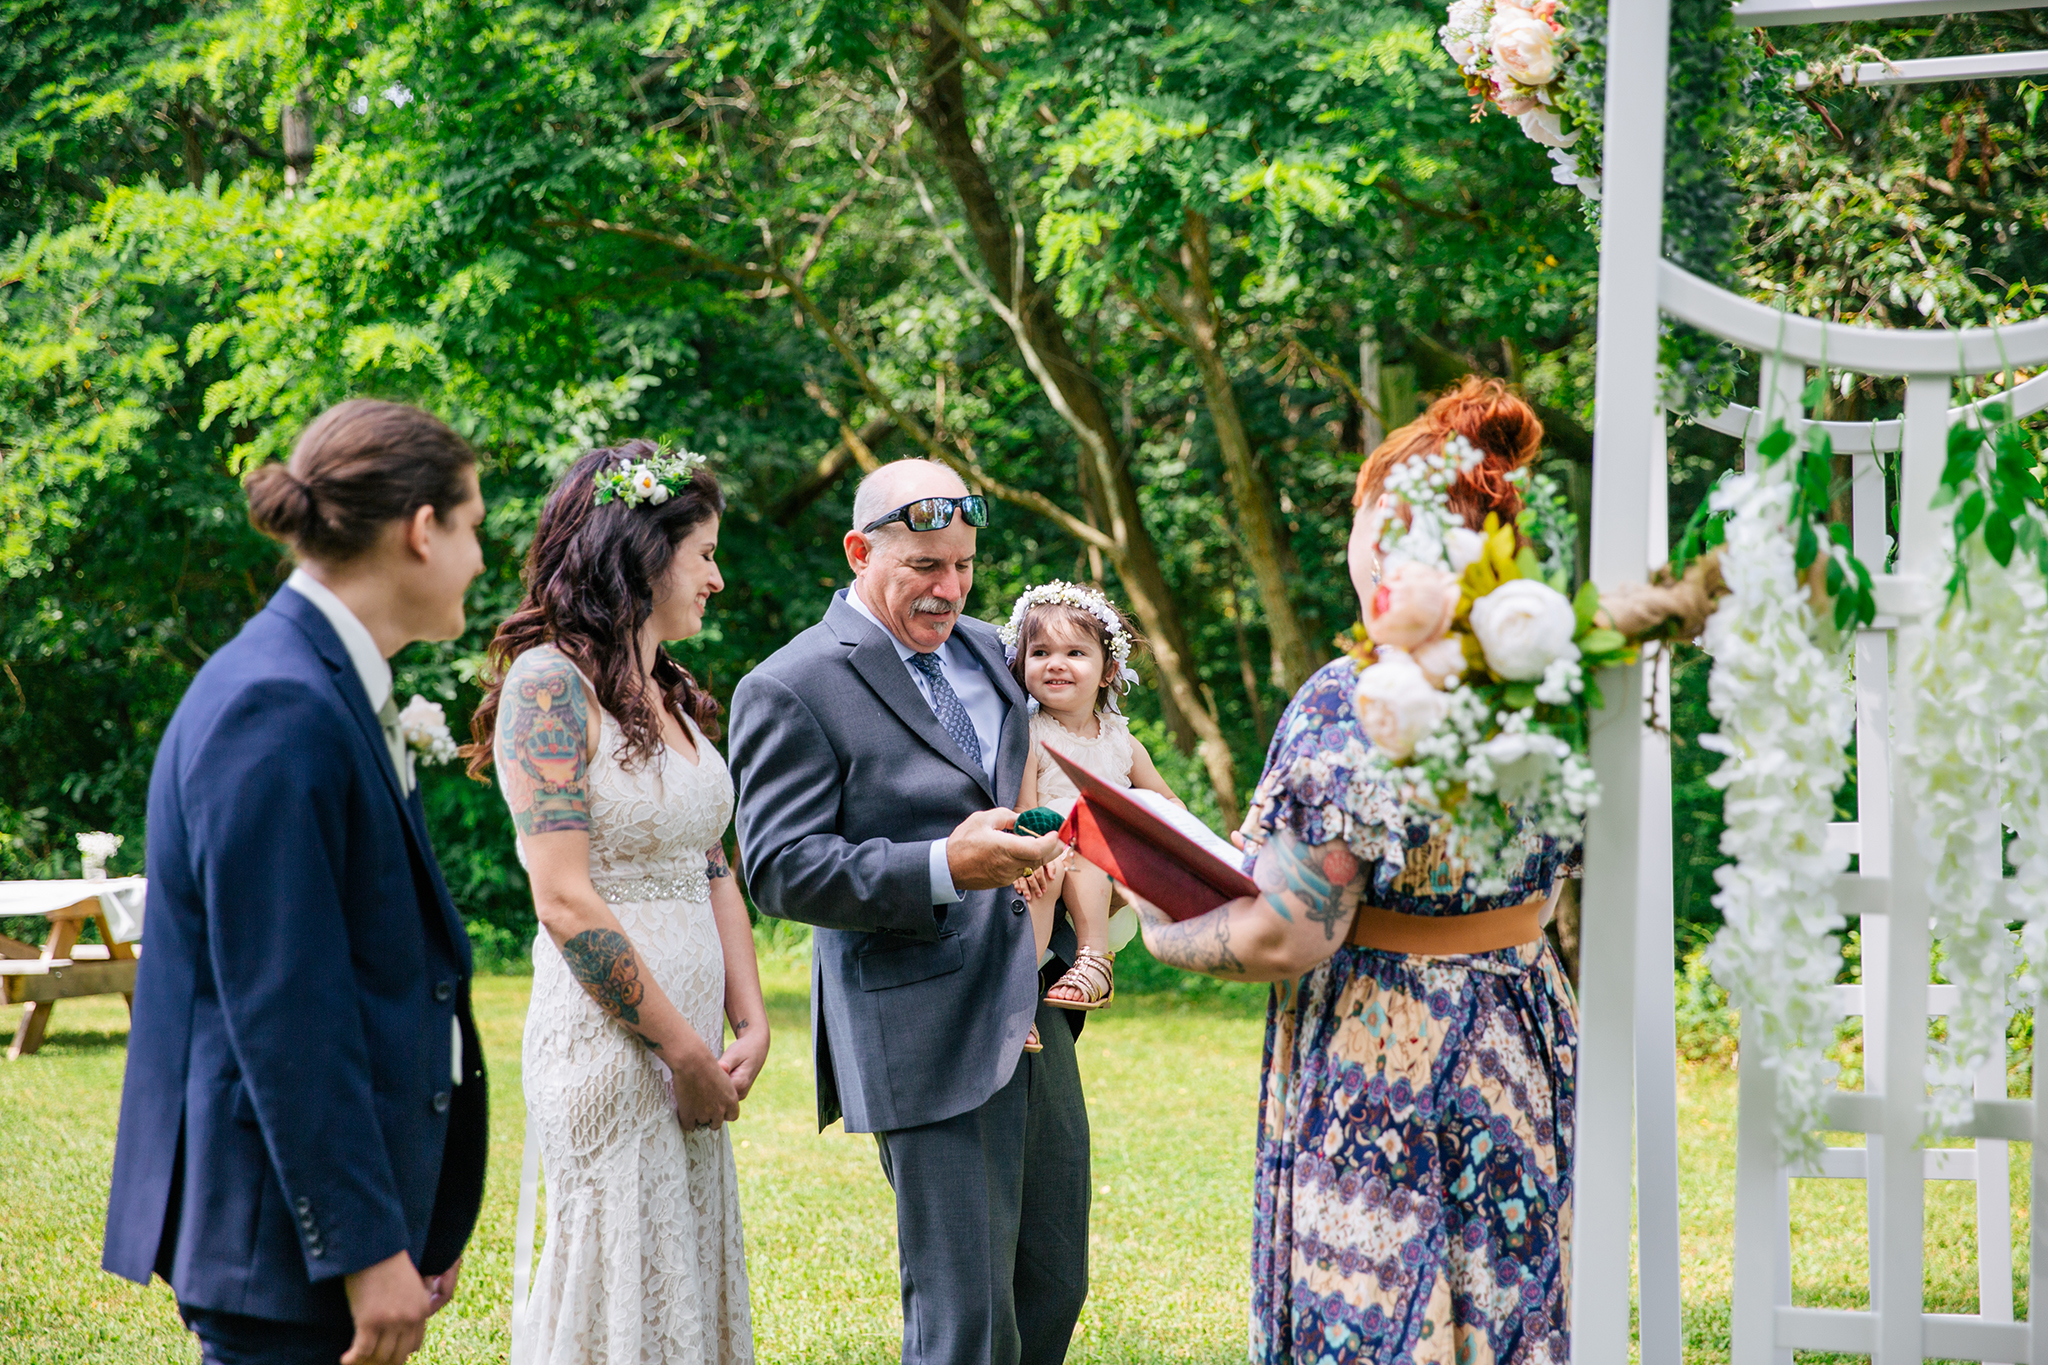 photography by mallory - small intimate wedding.jpg